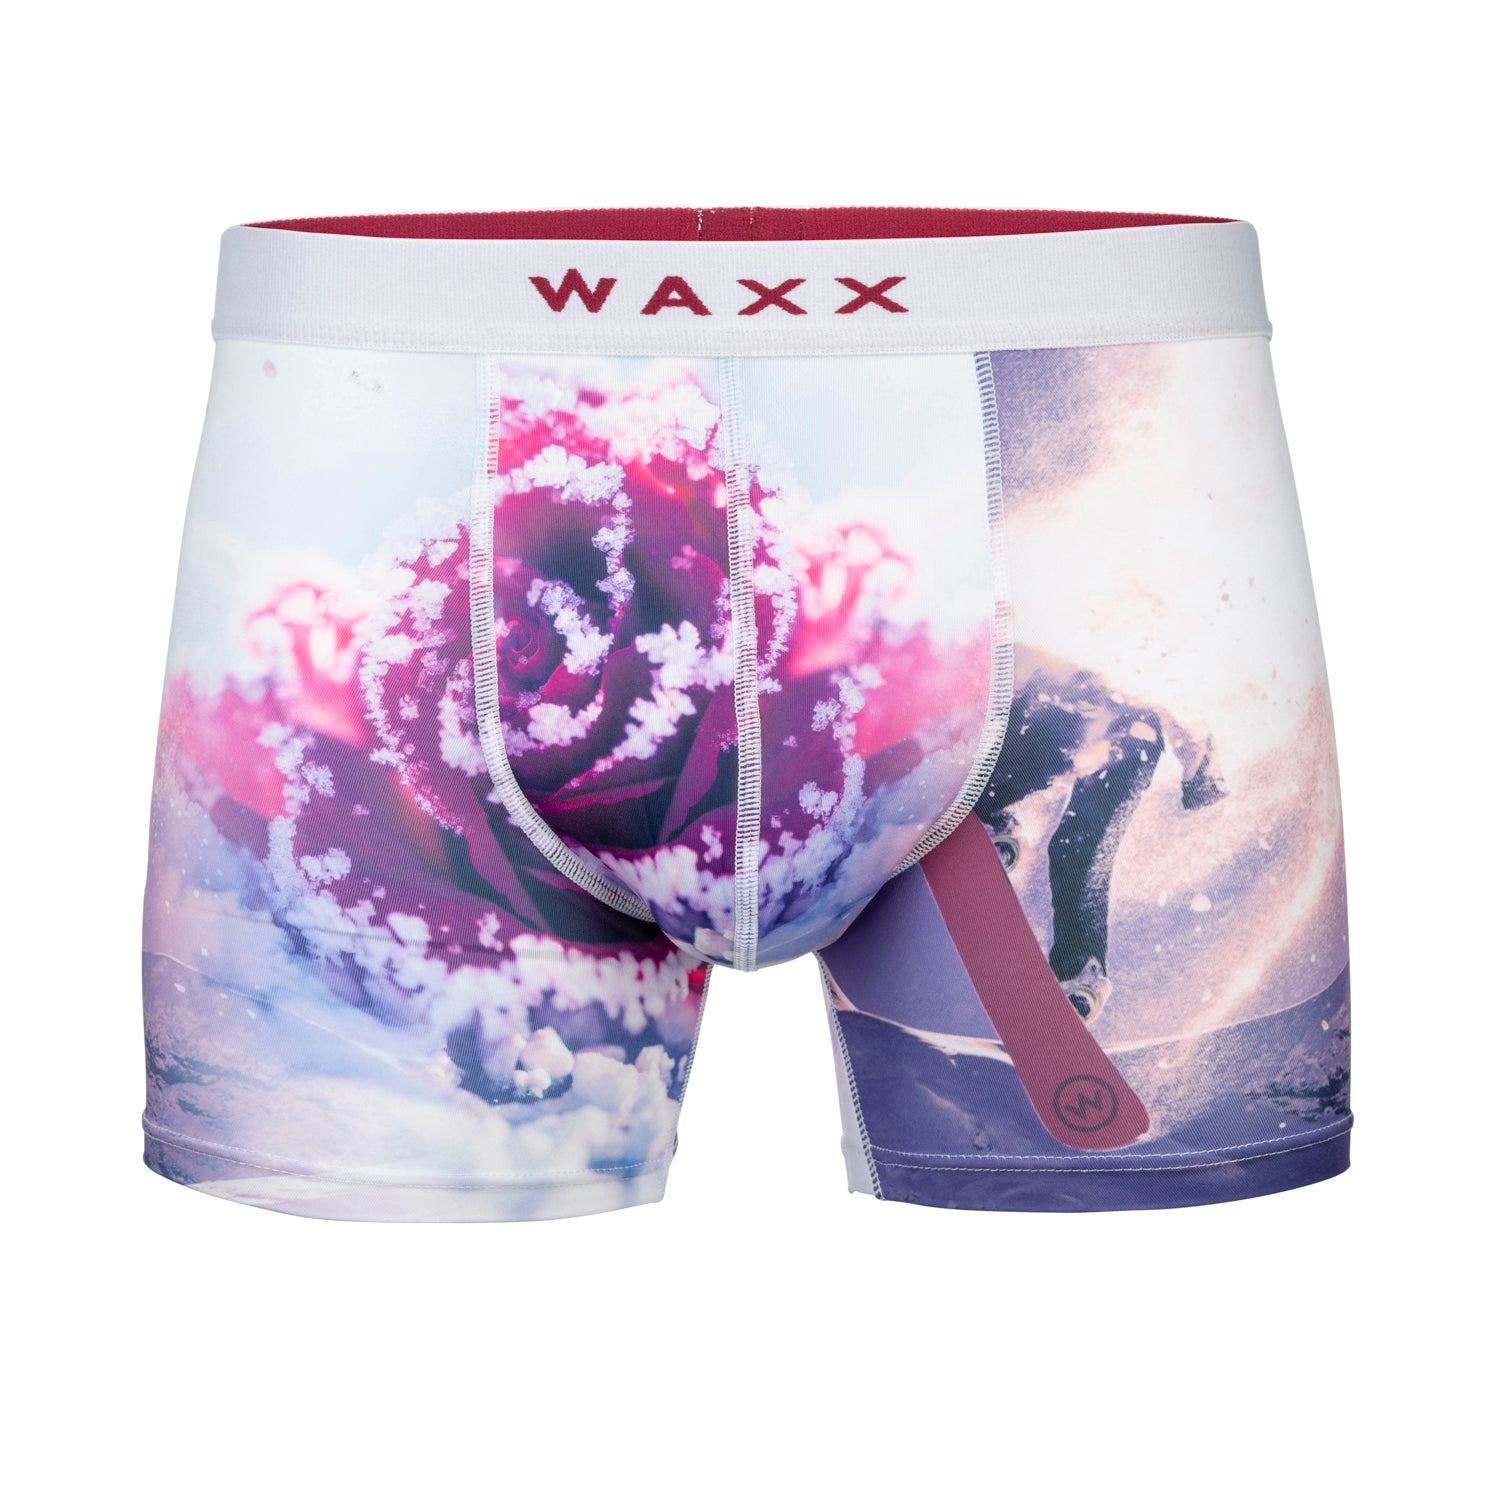 Waxx Men's Trunk Boxer Short Fallin